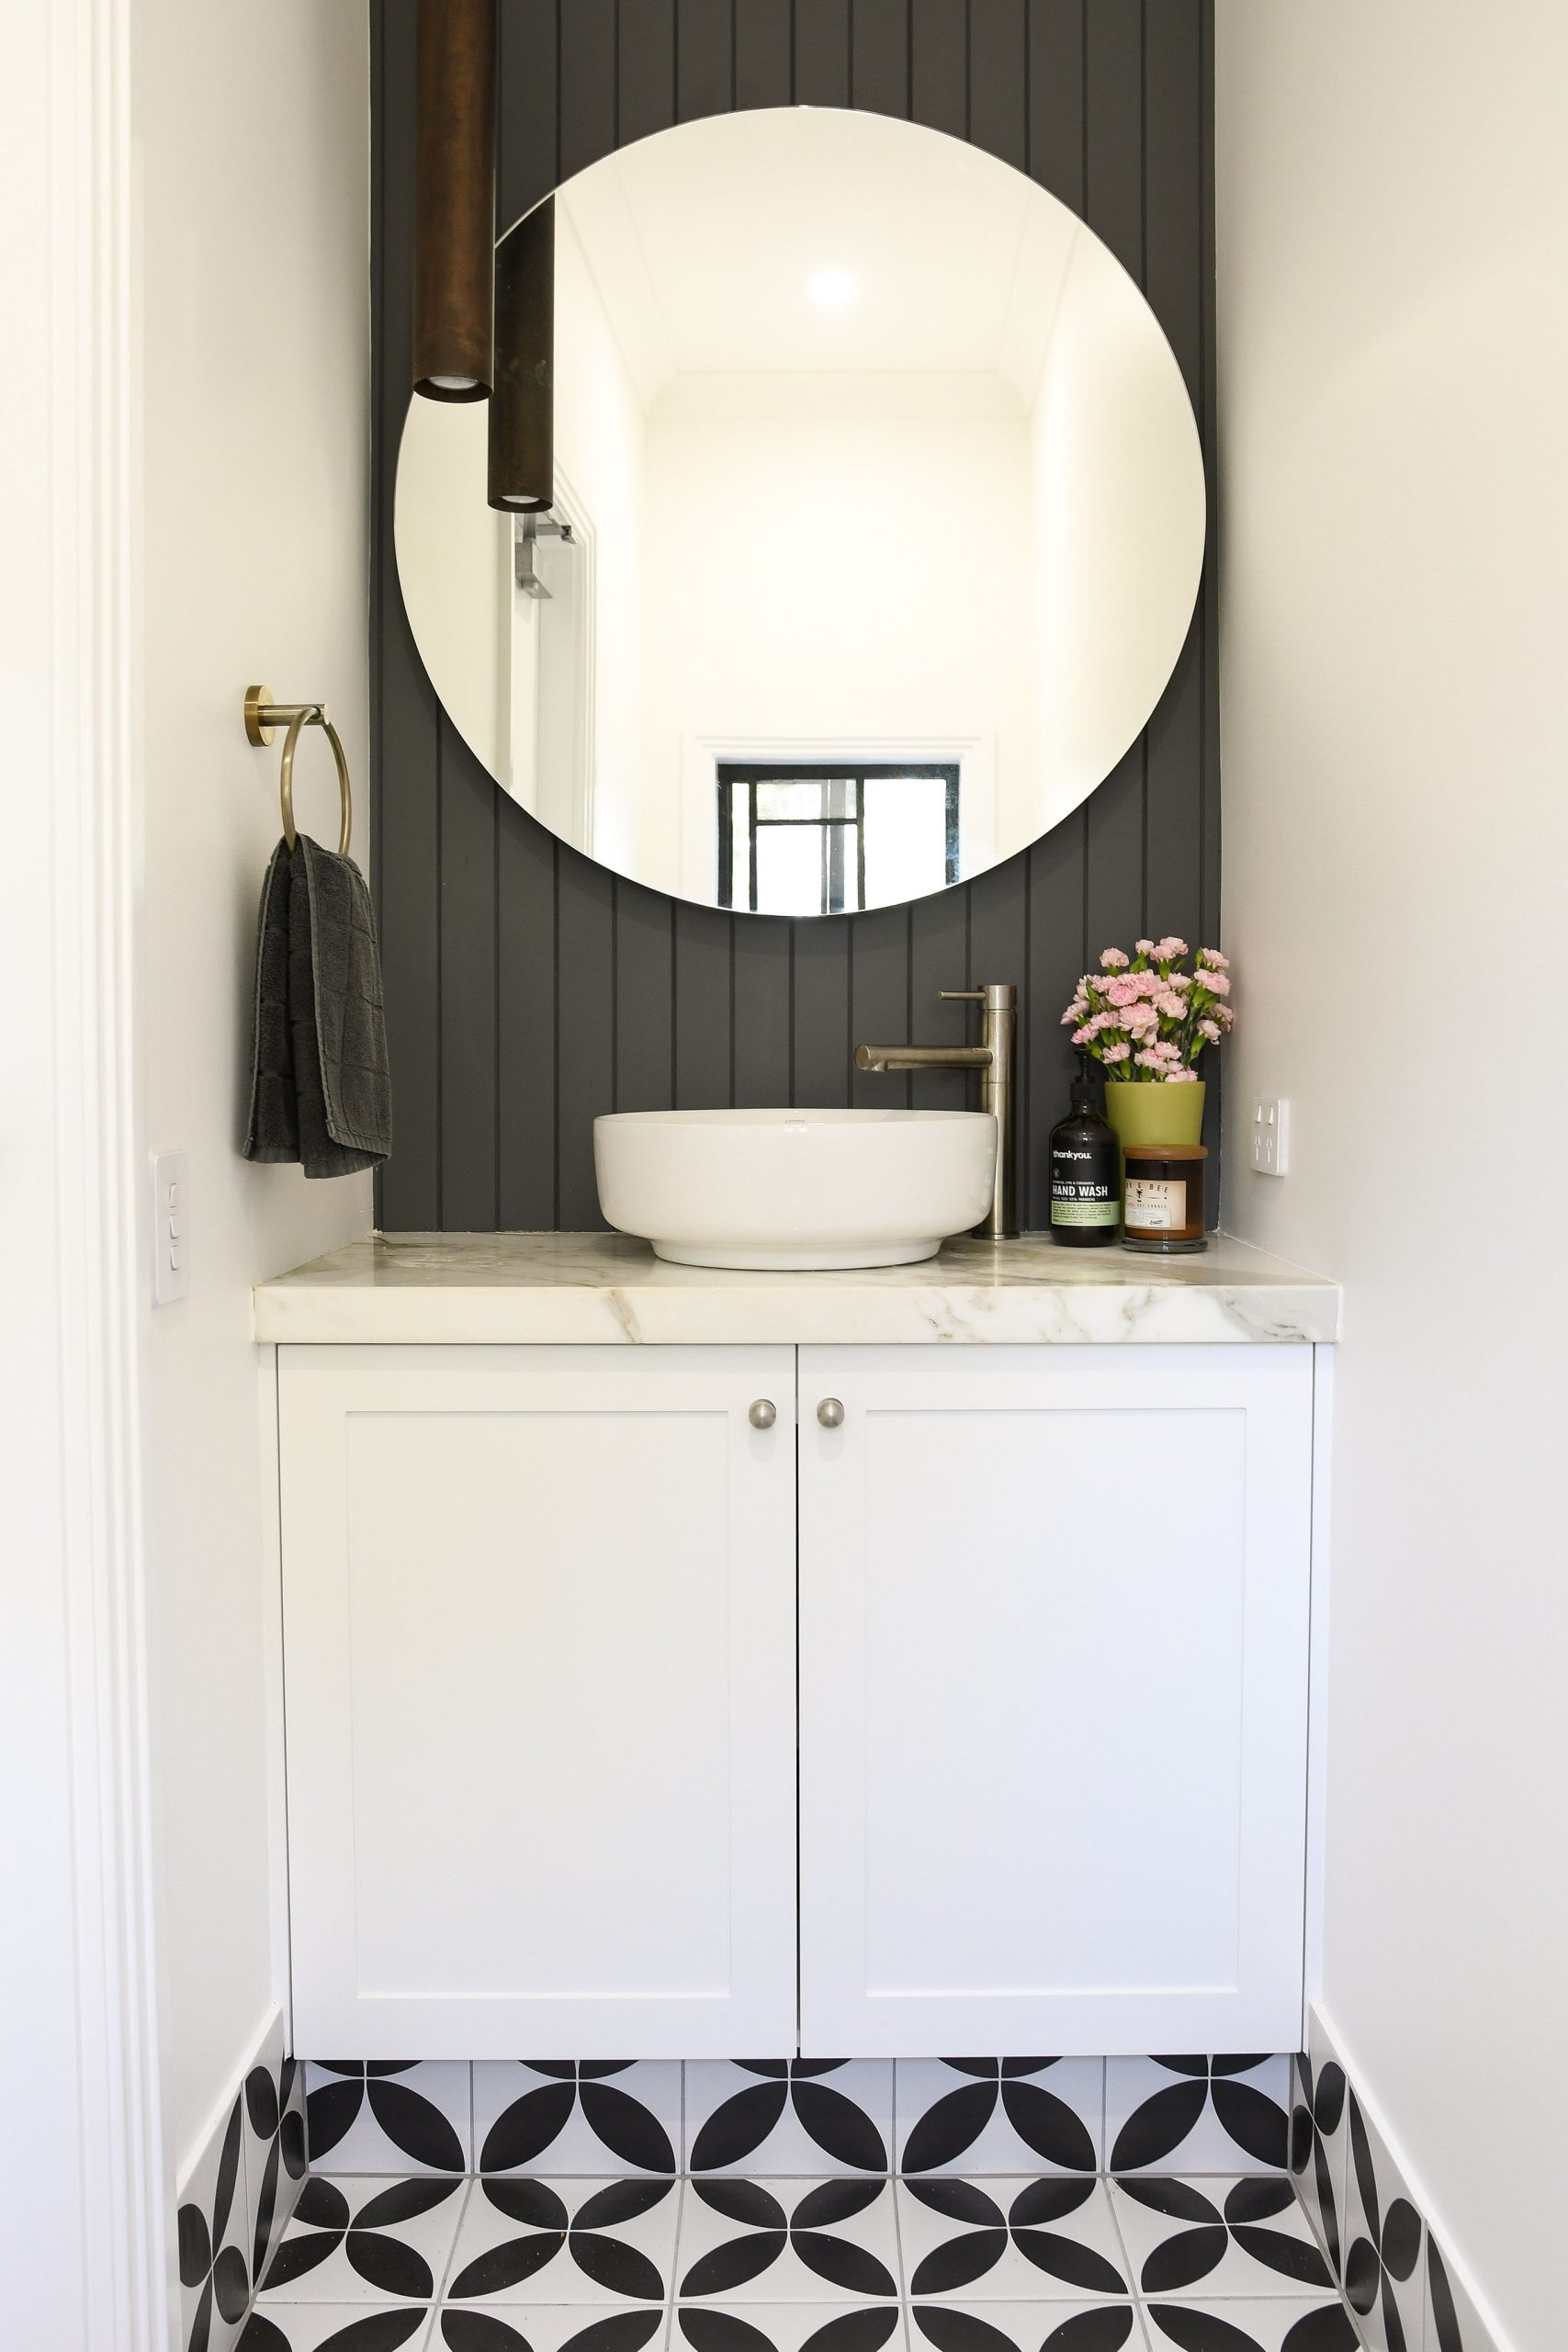 Troy Roberts - PRODUCTS BATHROOM 4TH IMAGE